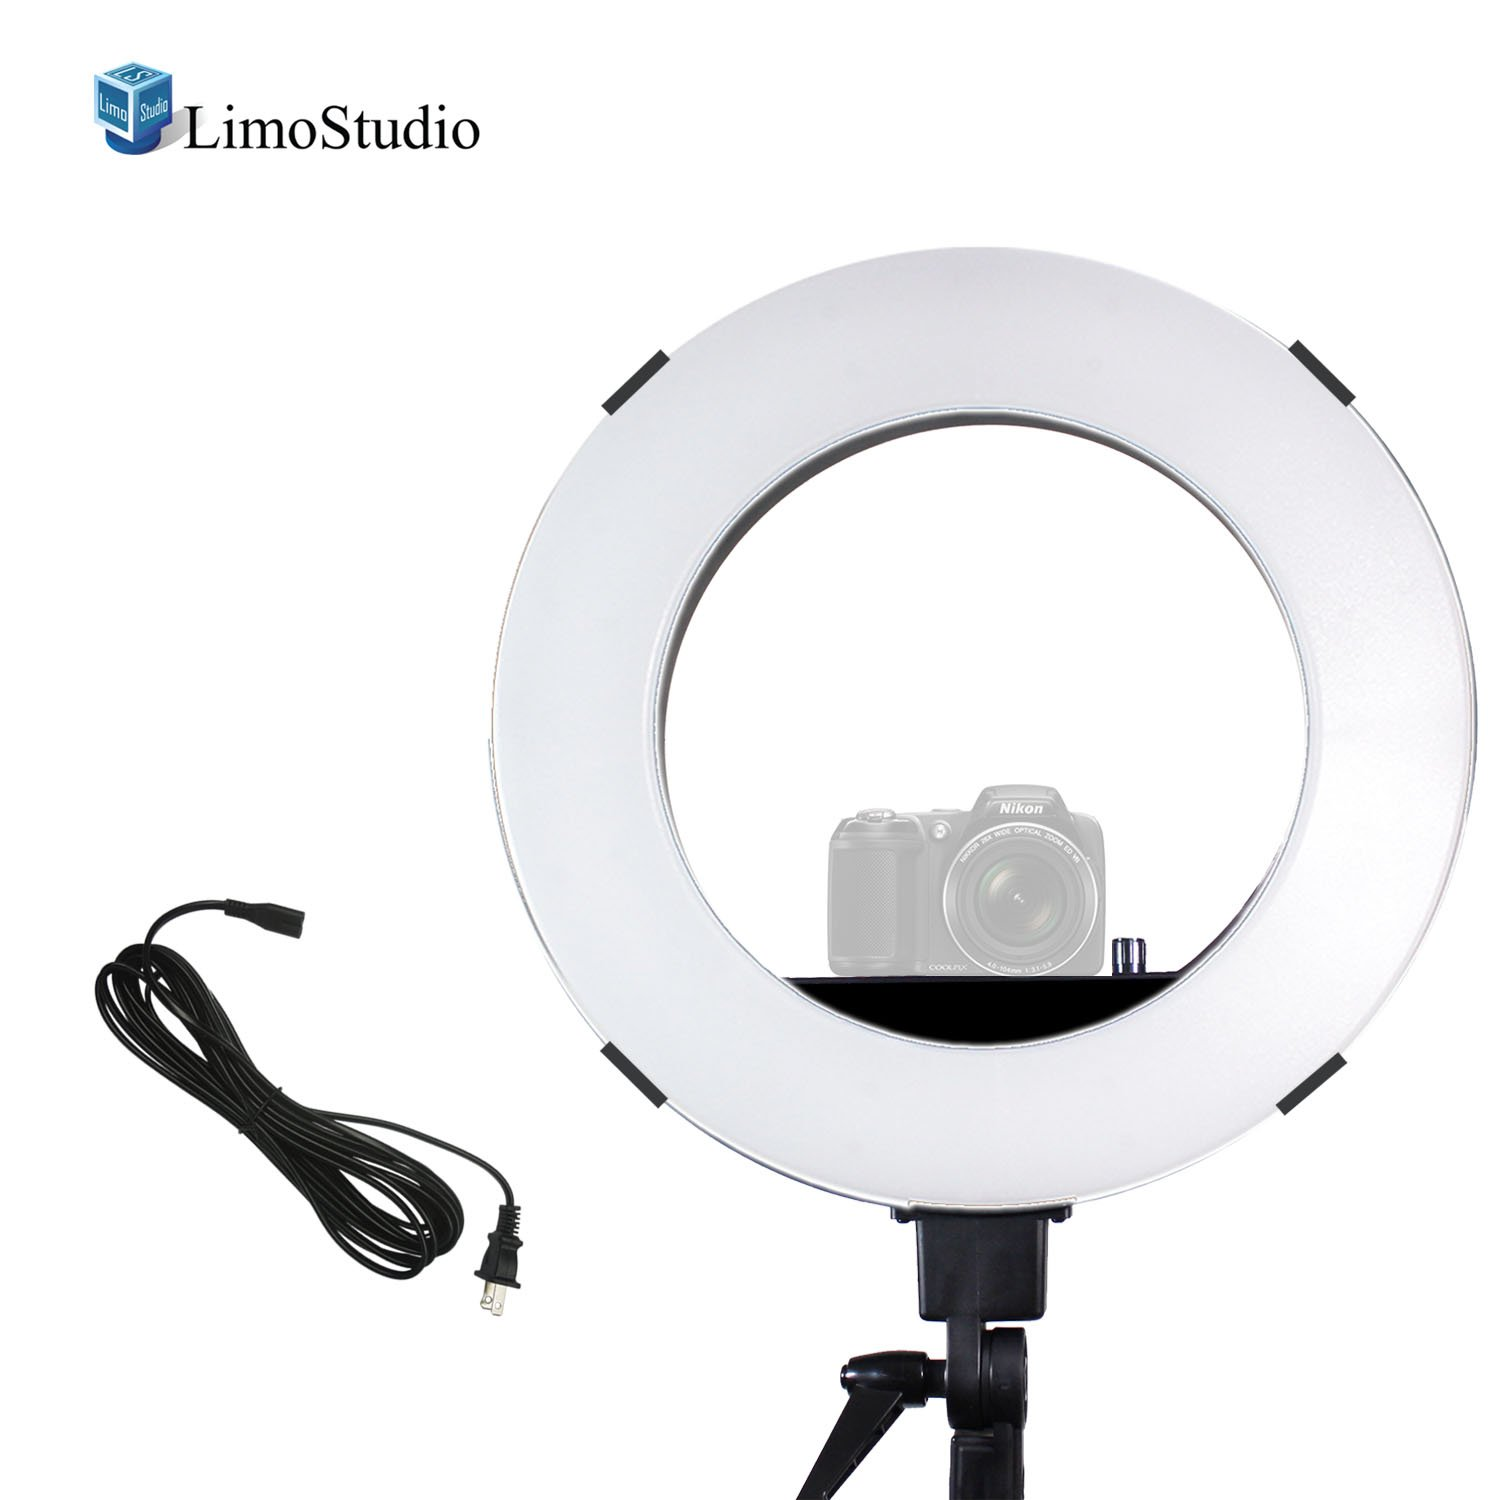 18'' Diameter Dimmable Ring Light 50W/5500K Continuous Output Lighting with Camera Mount Adapter Bracket and Carry Bag for Portrait and Photo Video Studio, AGG2373_V3